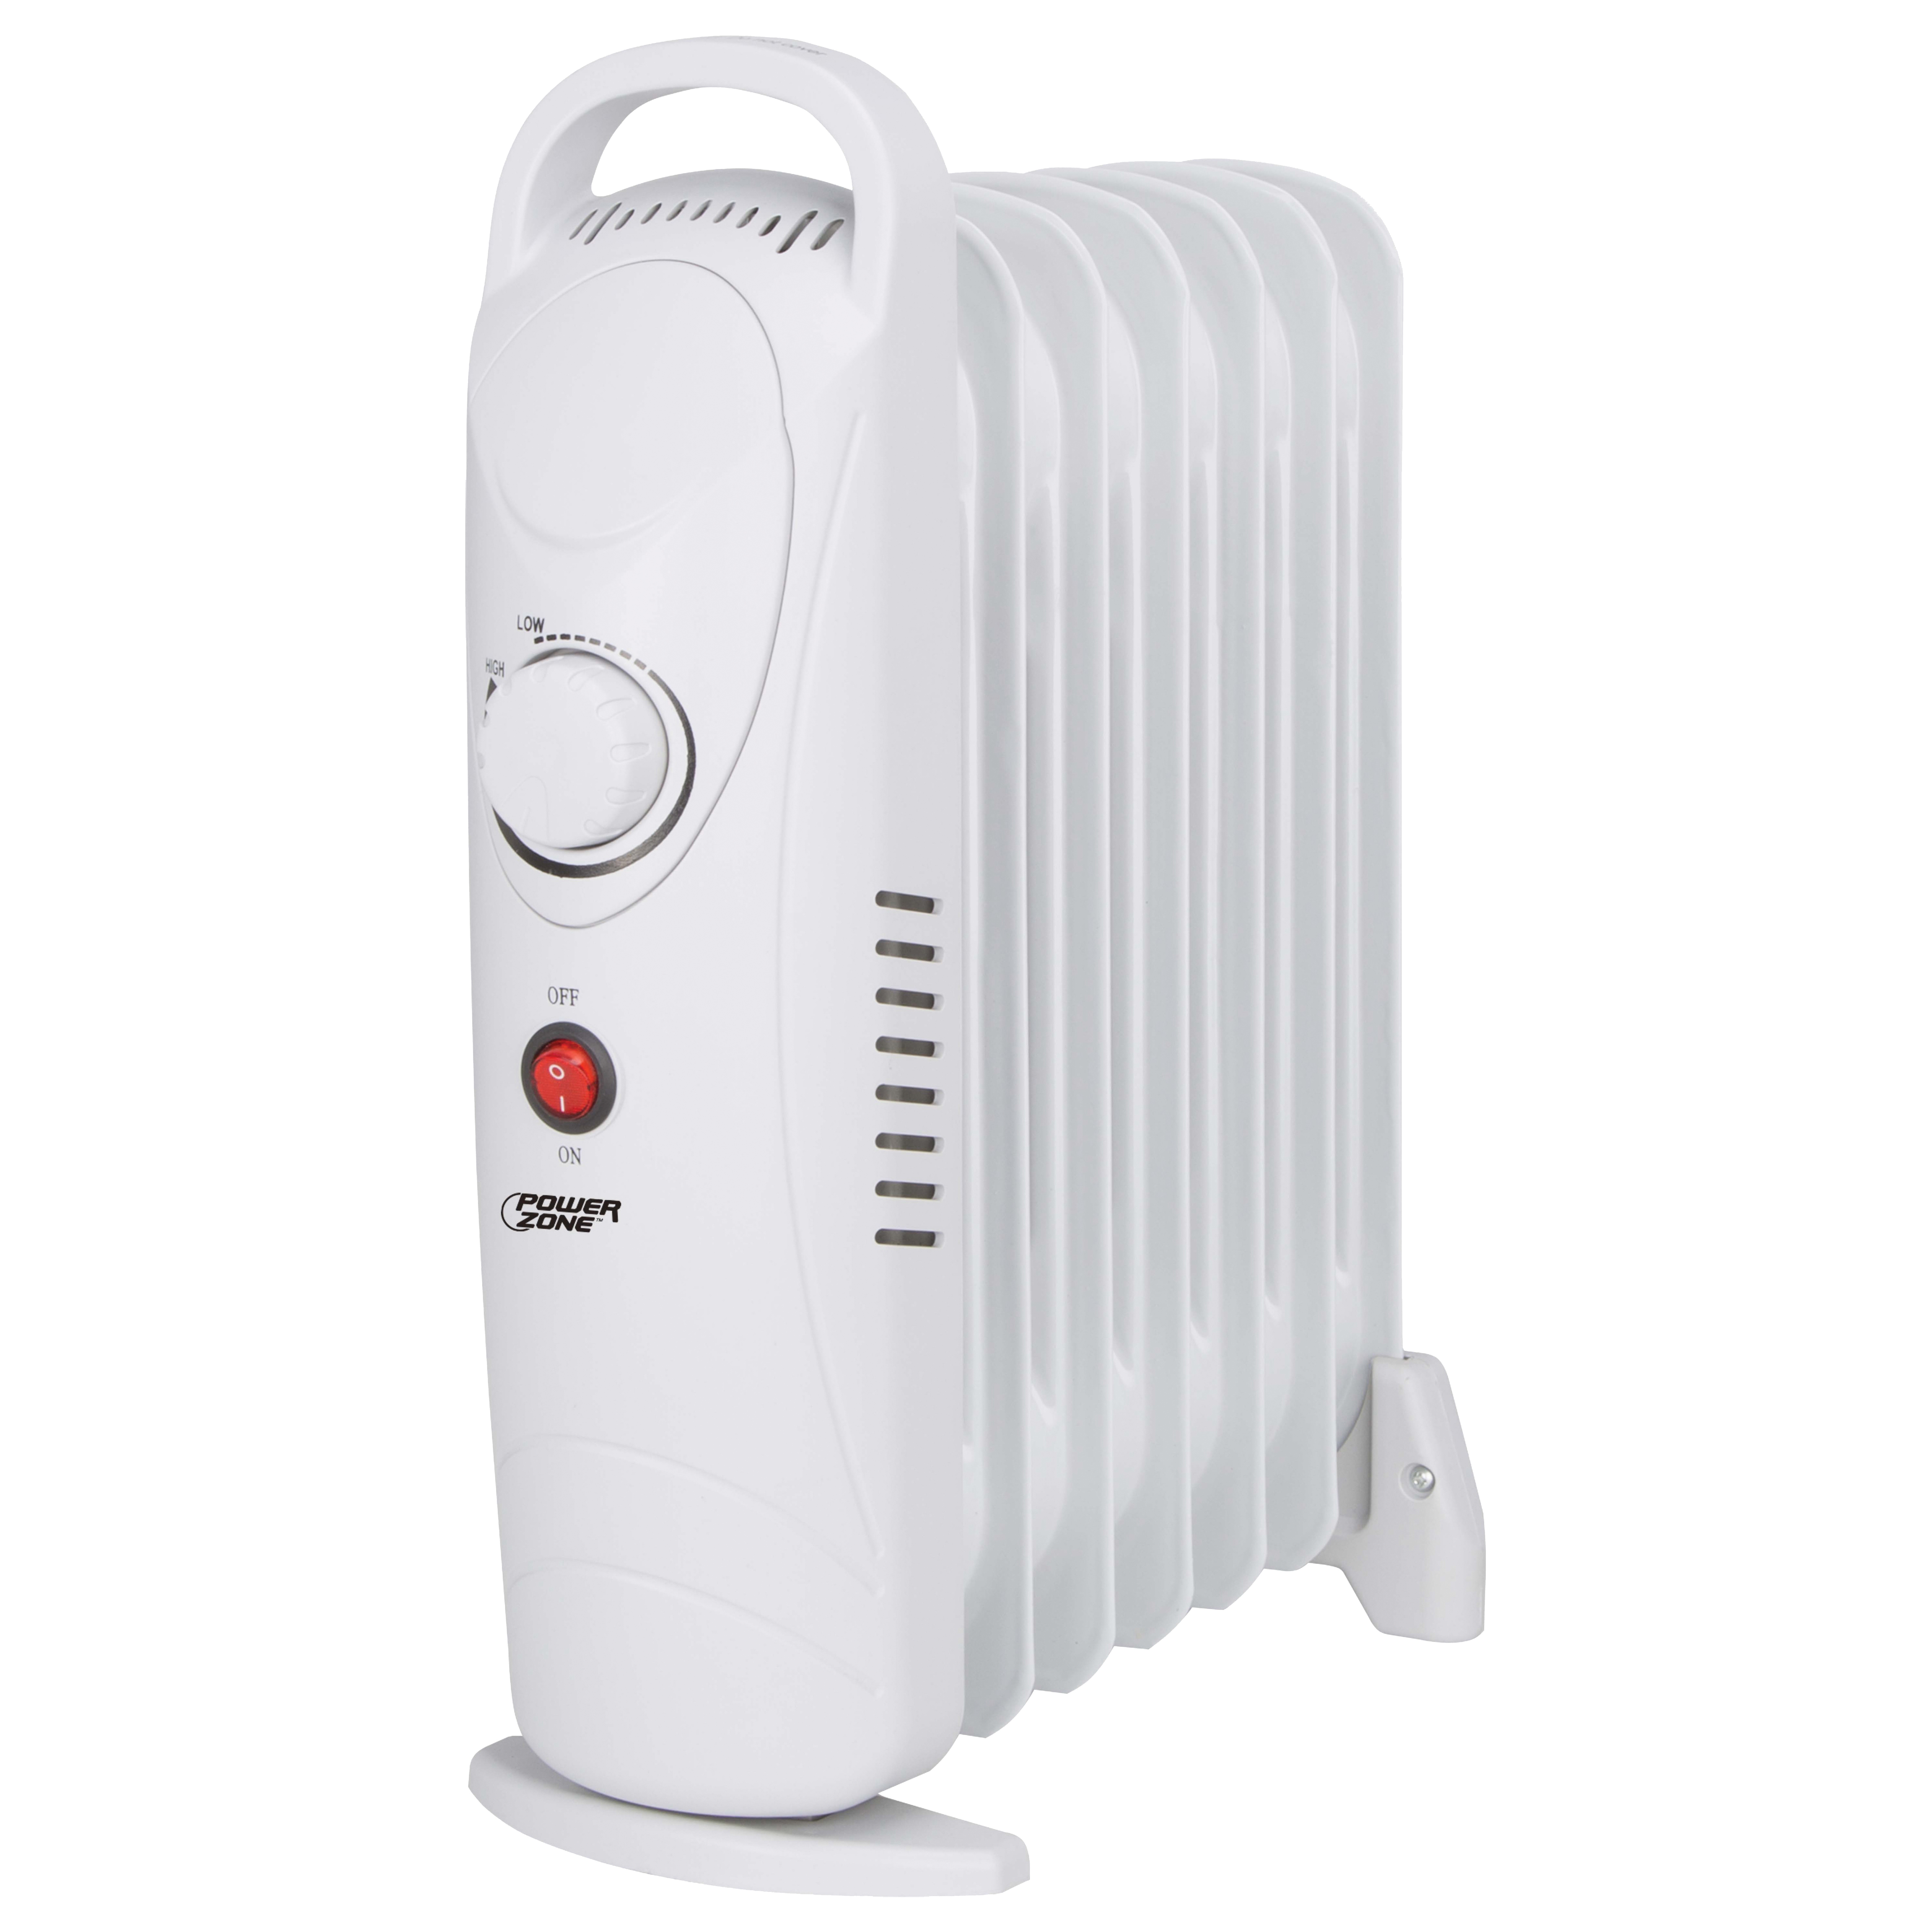 Picture of PowerZone DF-600H3-7 Mini Oil Filled Heater 700W White, 5.8 A, 120 V, 700 W, 700 W Heating, 1-Heating Stage